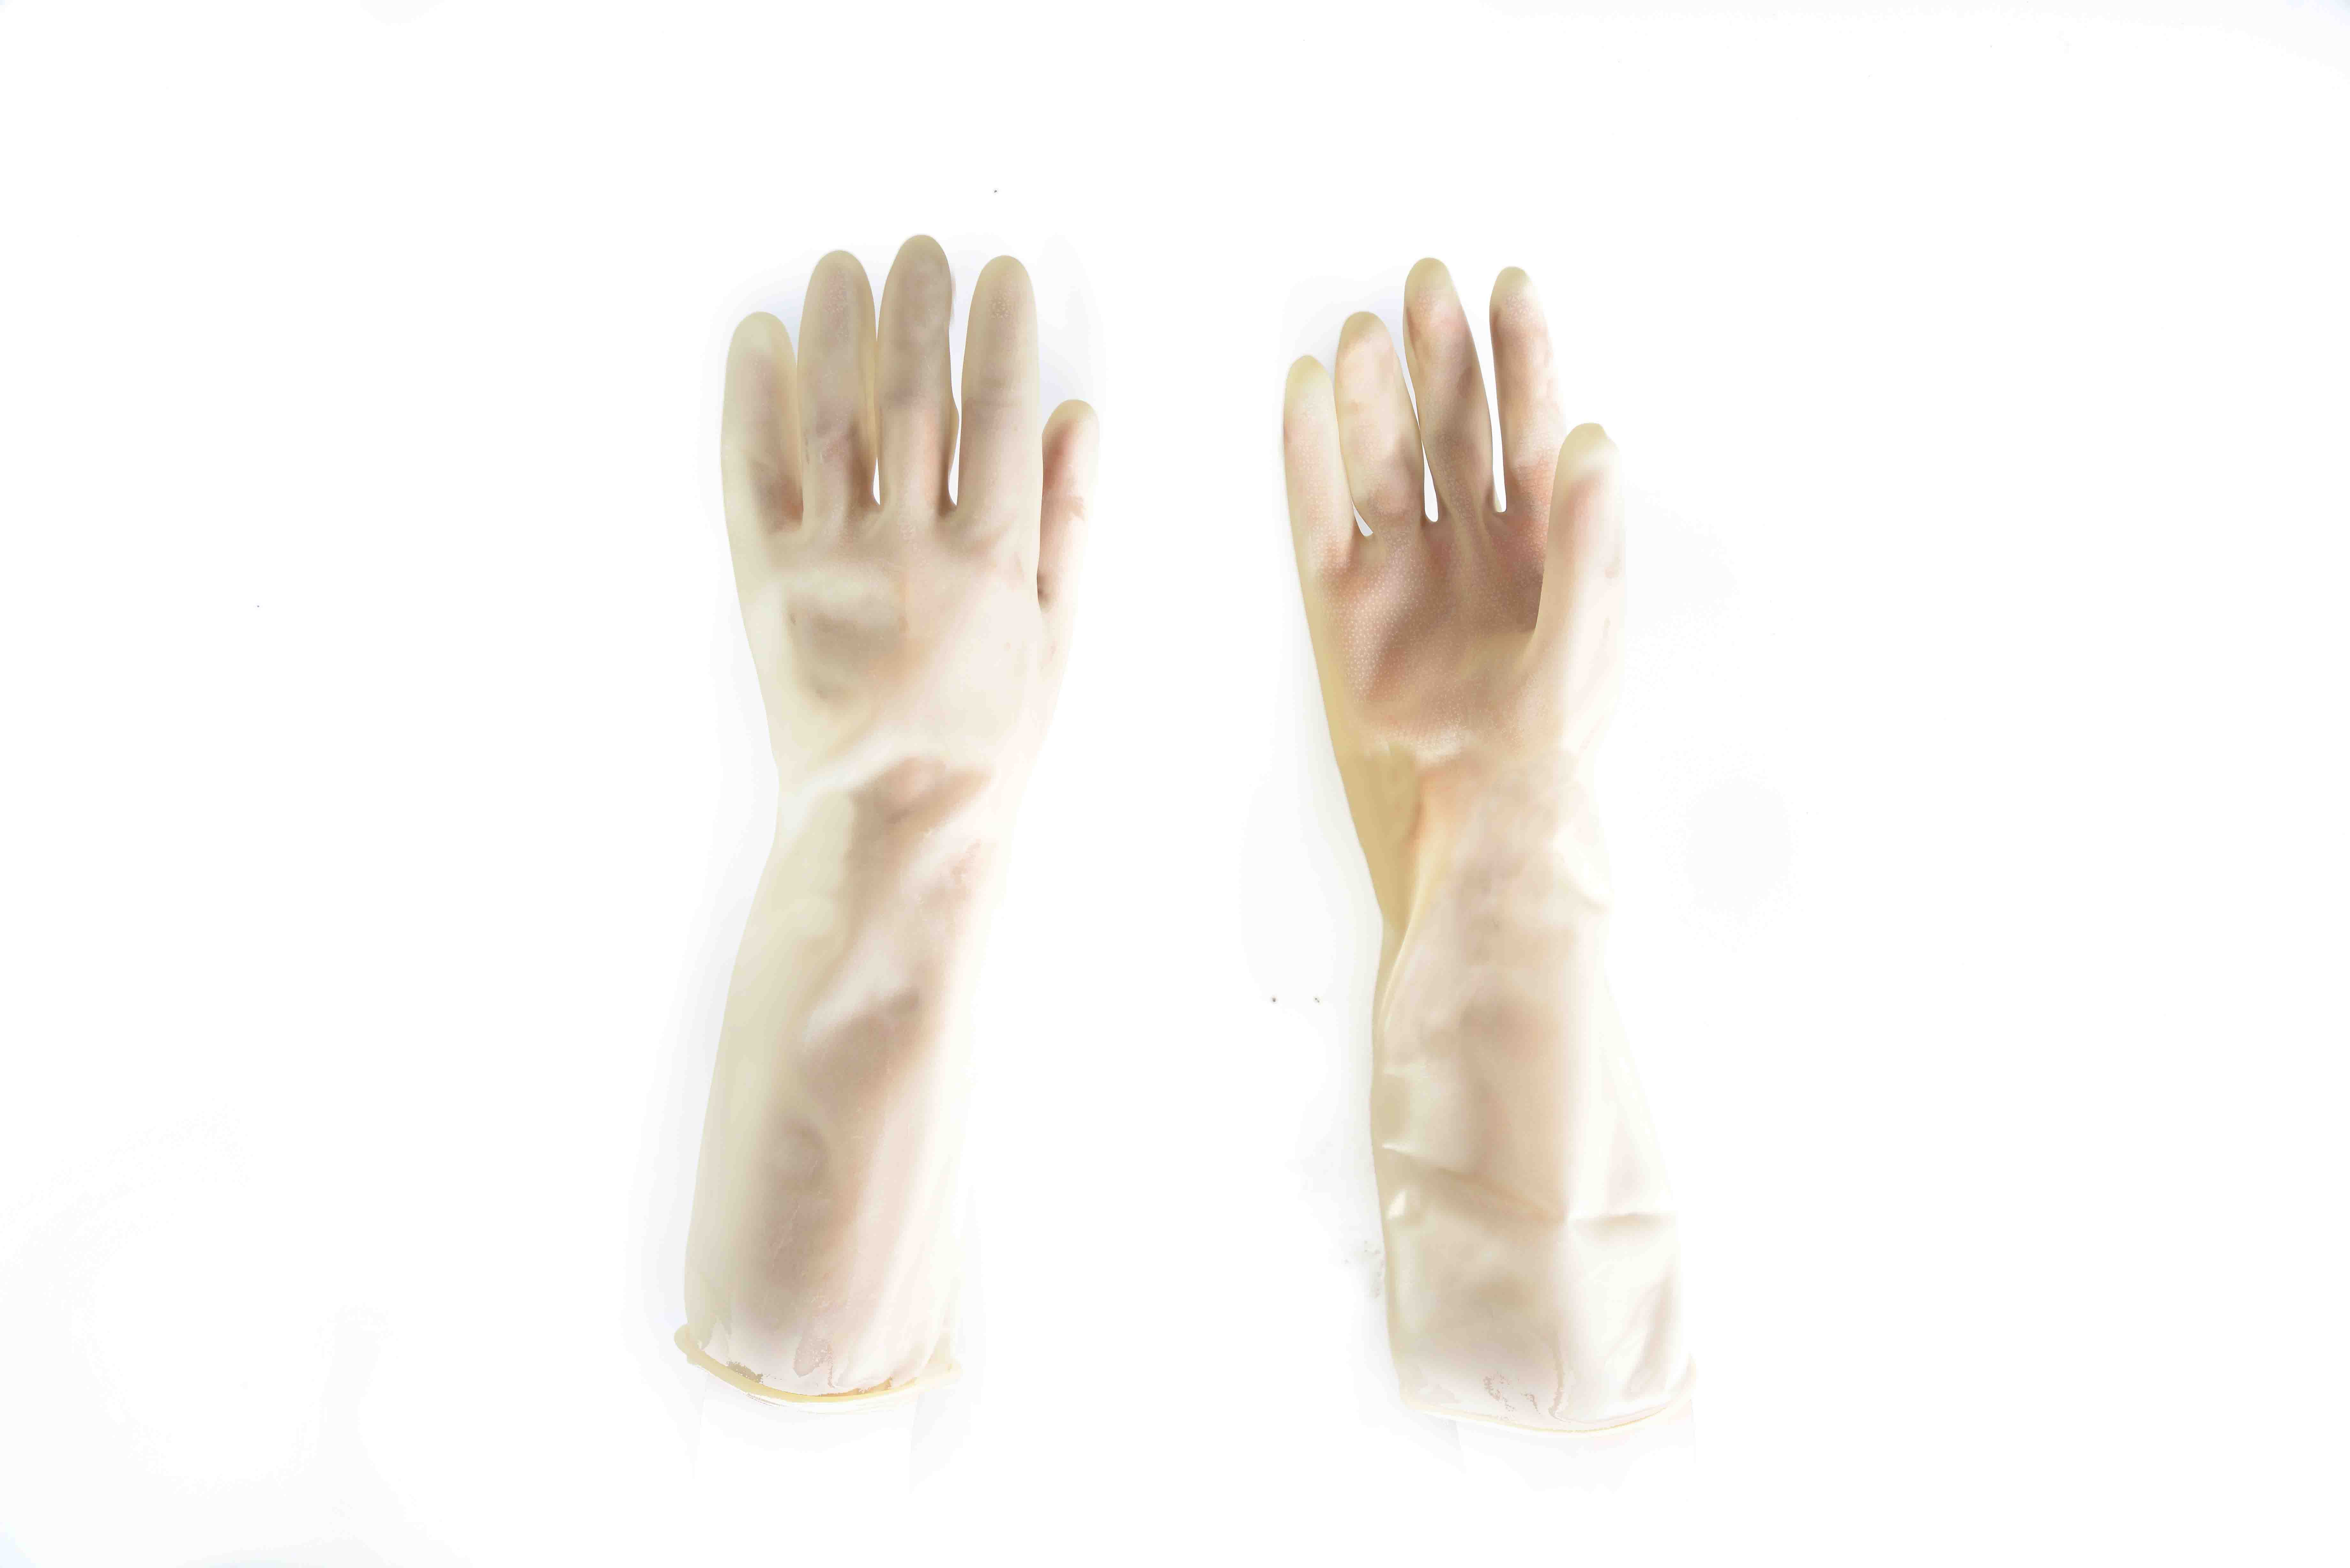 Wholesale price for Household rubber glove S London Manufacturer